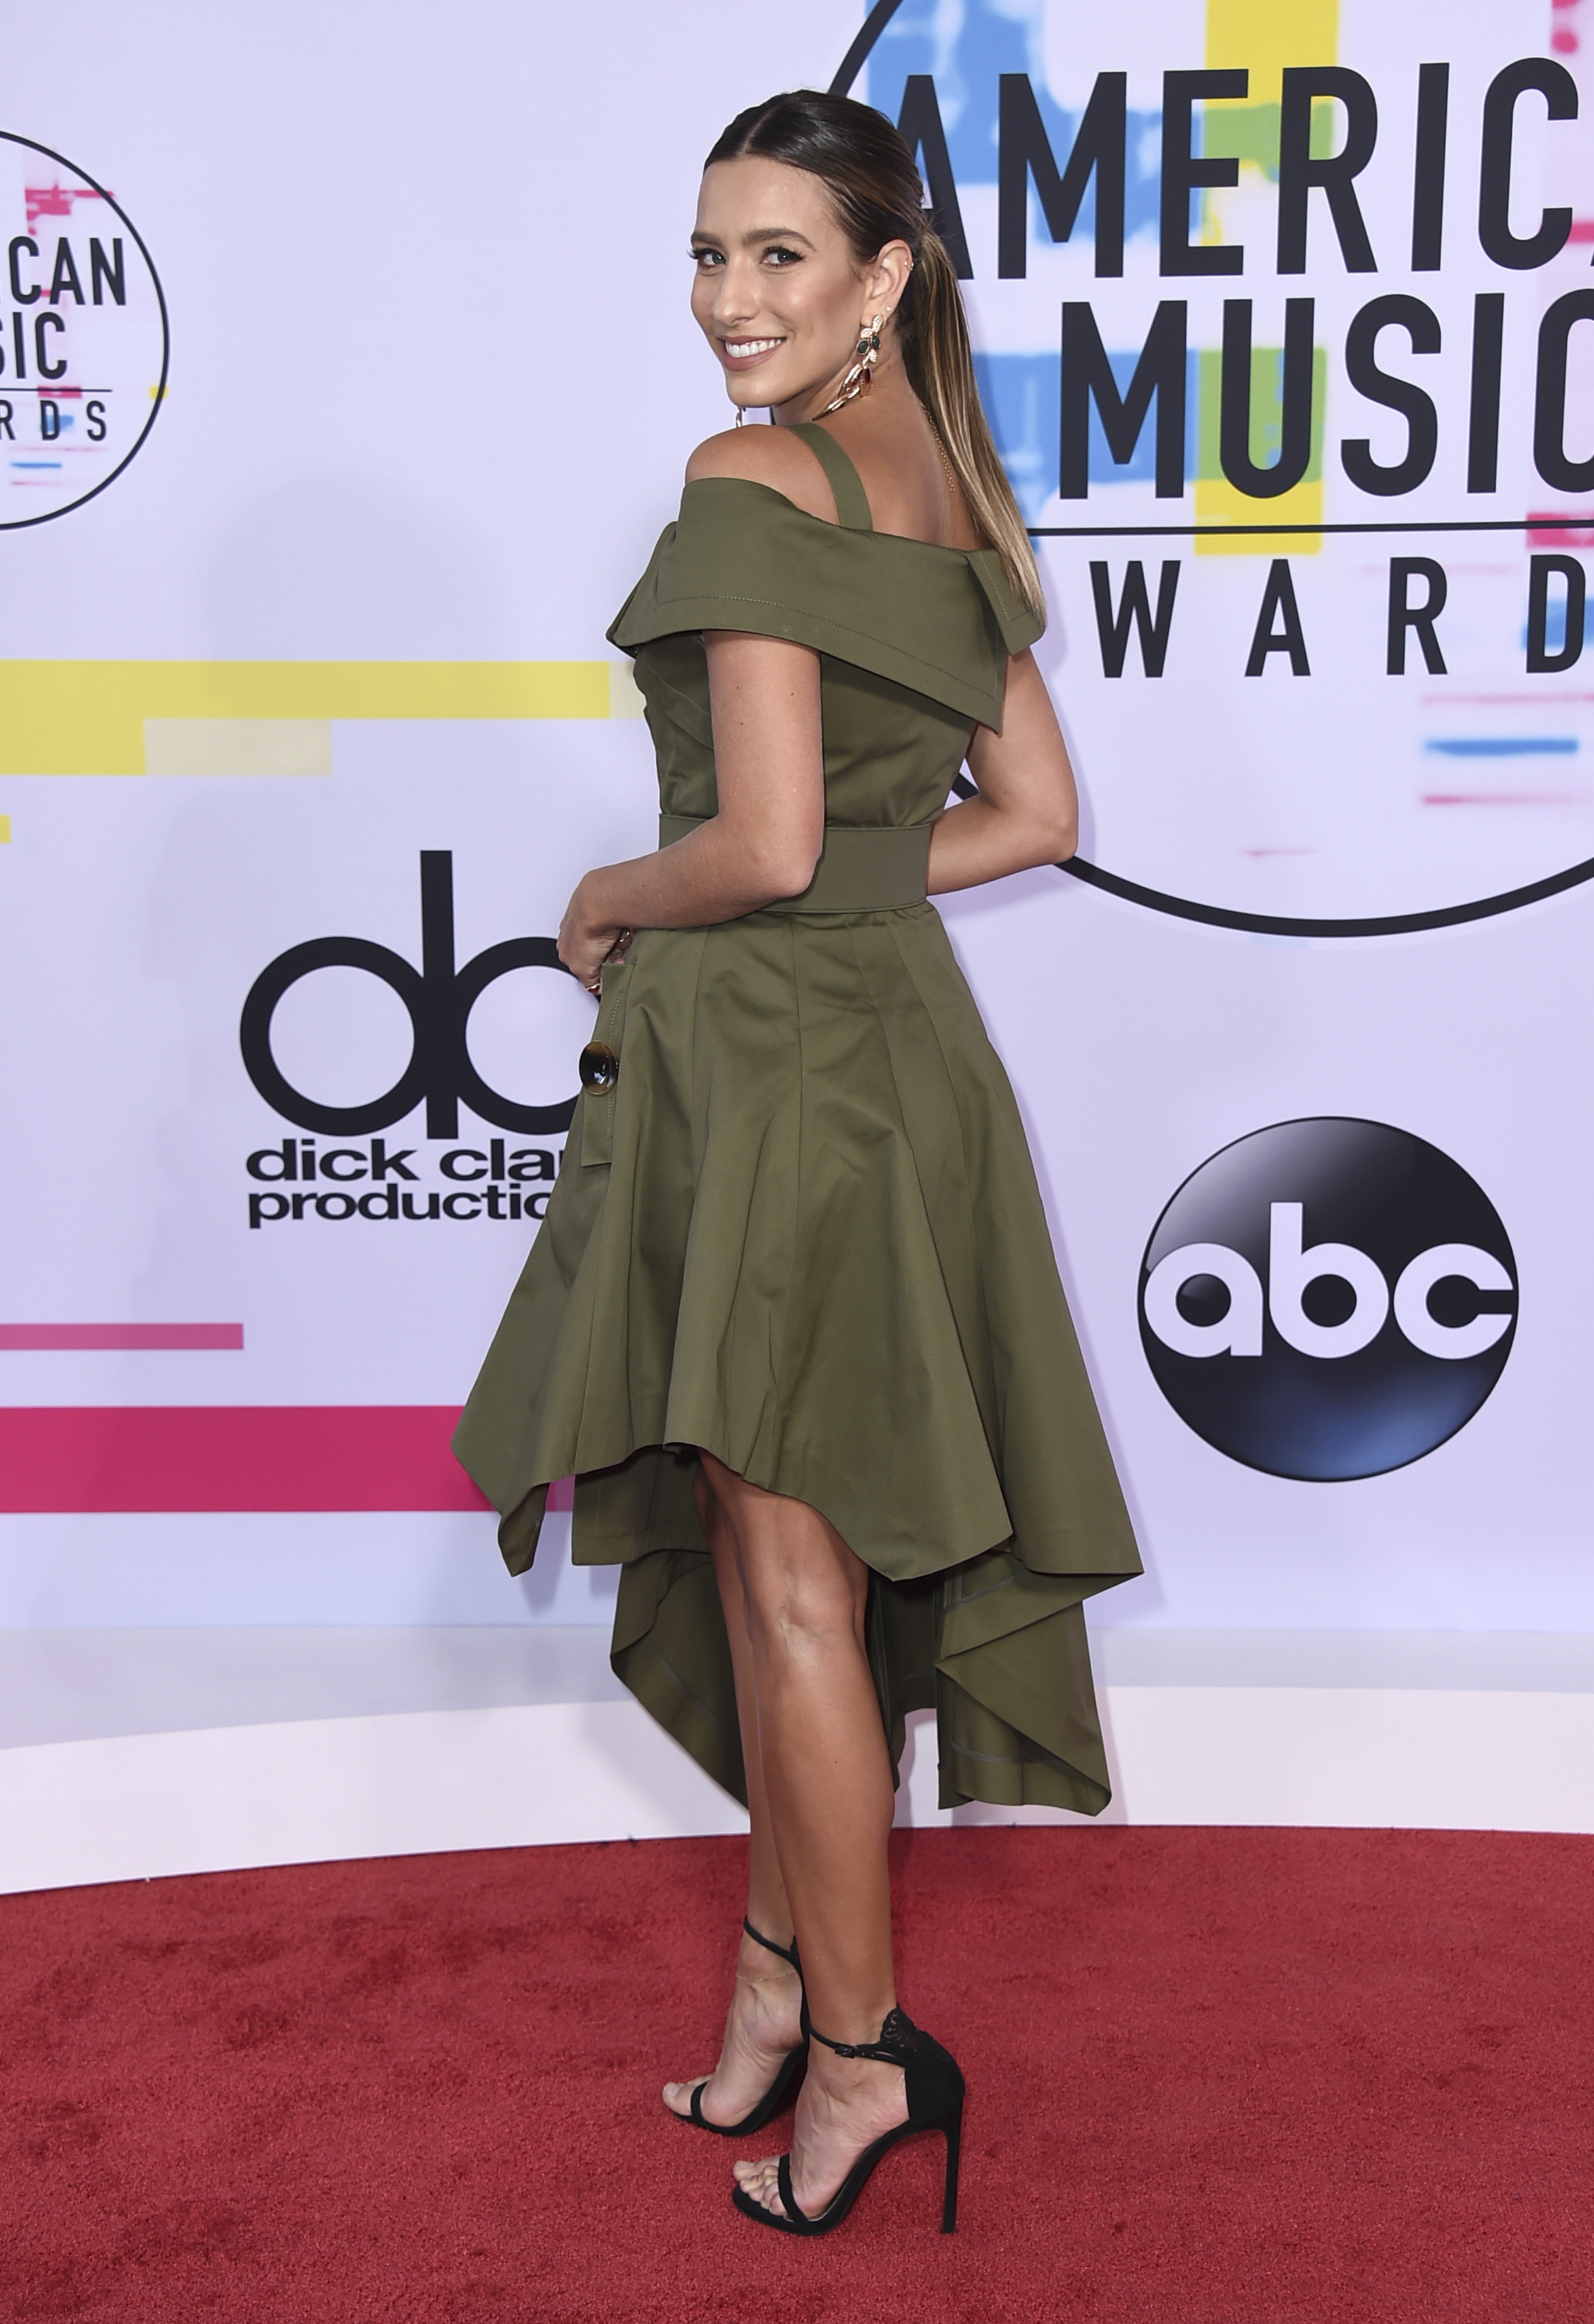 <div class='meta'><div class='origin-logo' data-origin='none'></div><span class='caption-text' data-credit='Jordan Strauss/Invision/AP'>Renee Bargh arrives at the American Music Awards at the Microsoft Theater on Sunday, Nov. 19, 2017, in Los Angeles.</span></div>